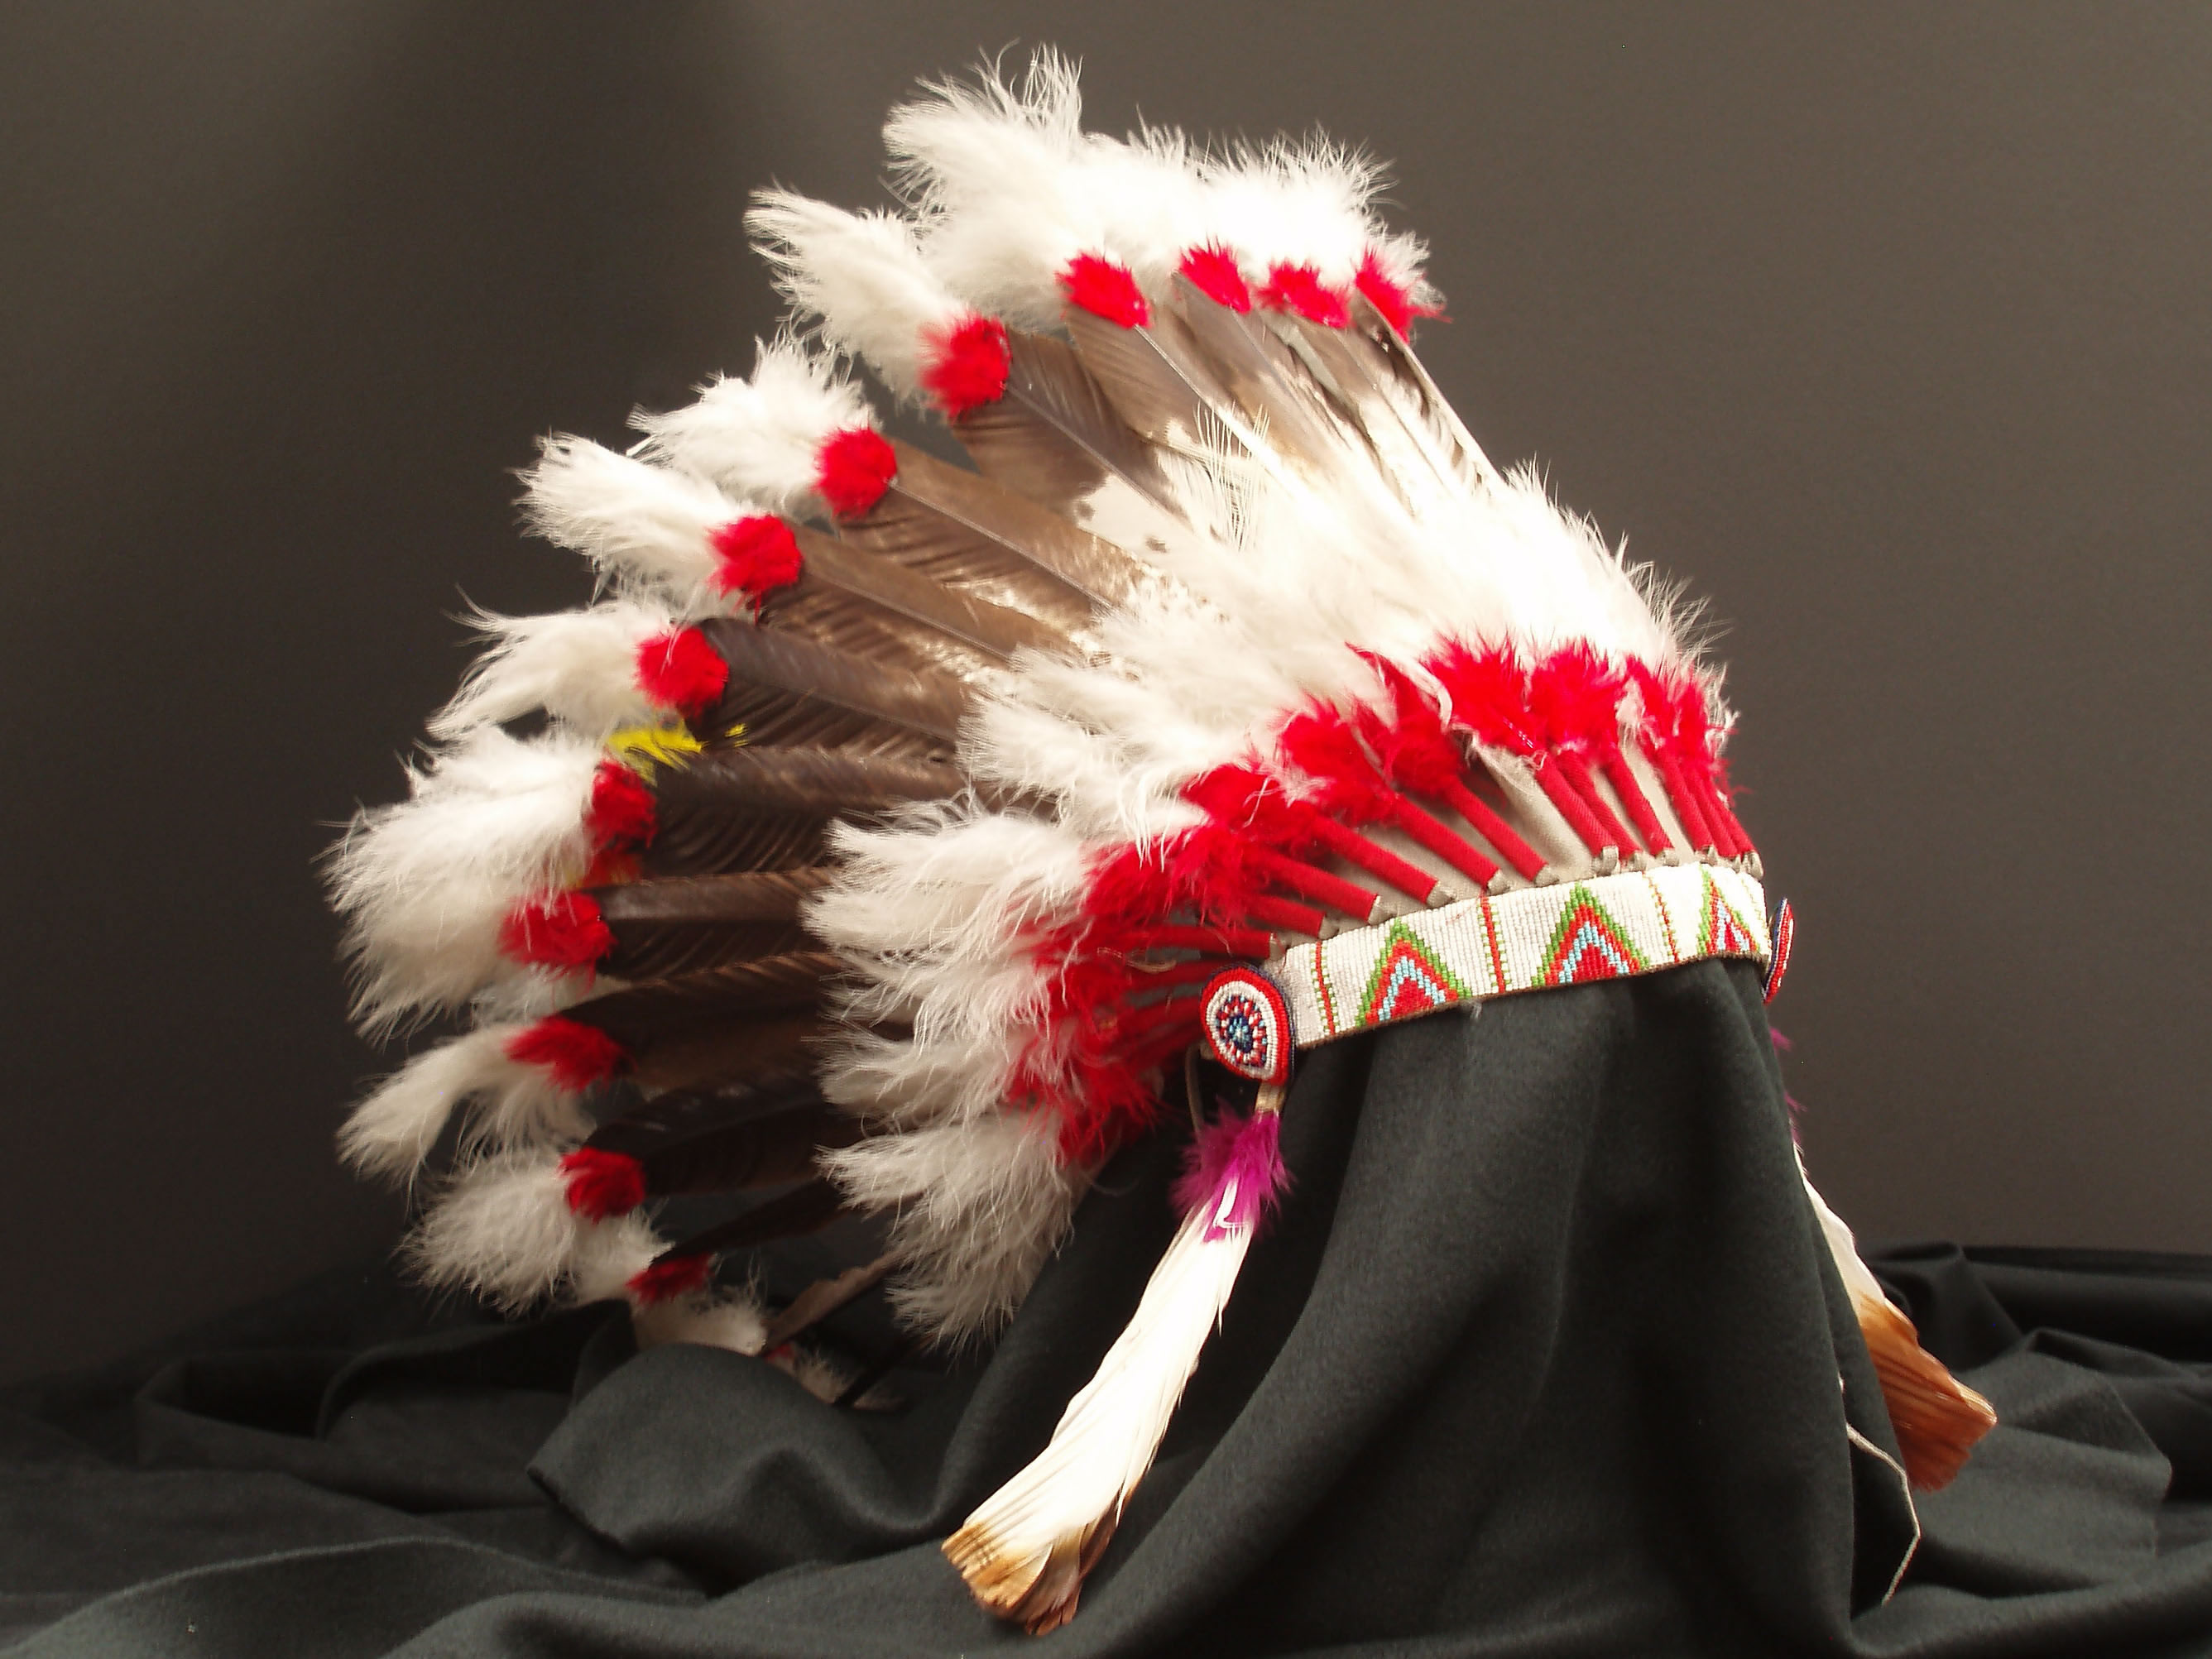 photograph of Blackfeet Headdress, white, brown and red feathers